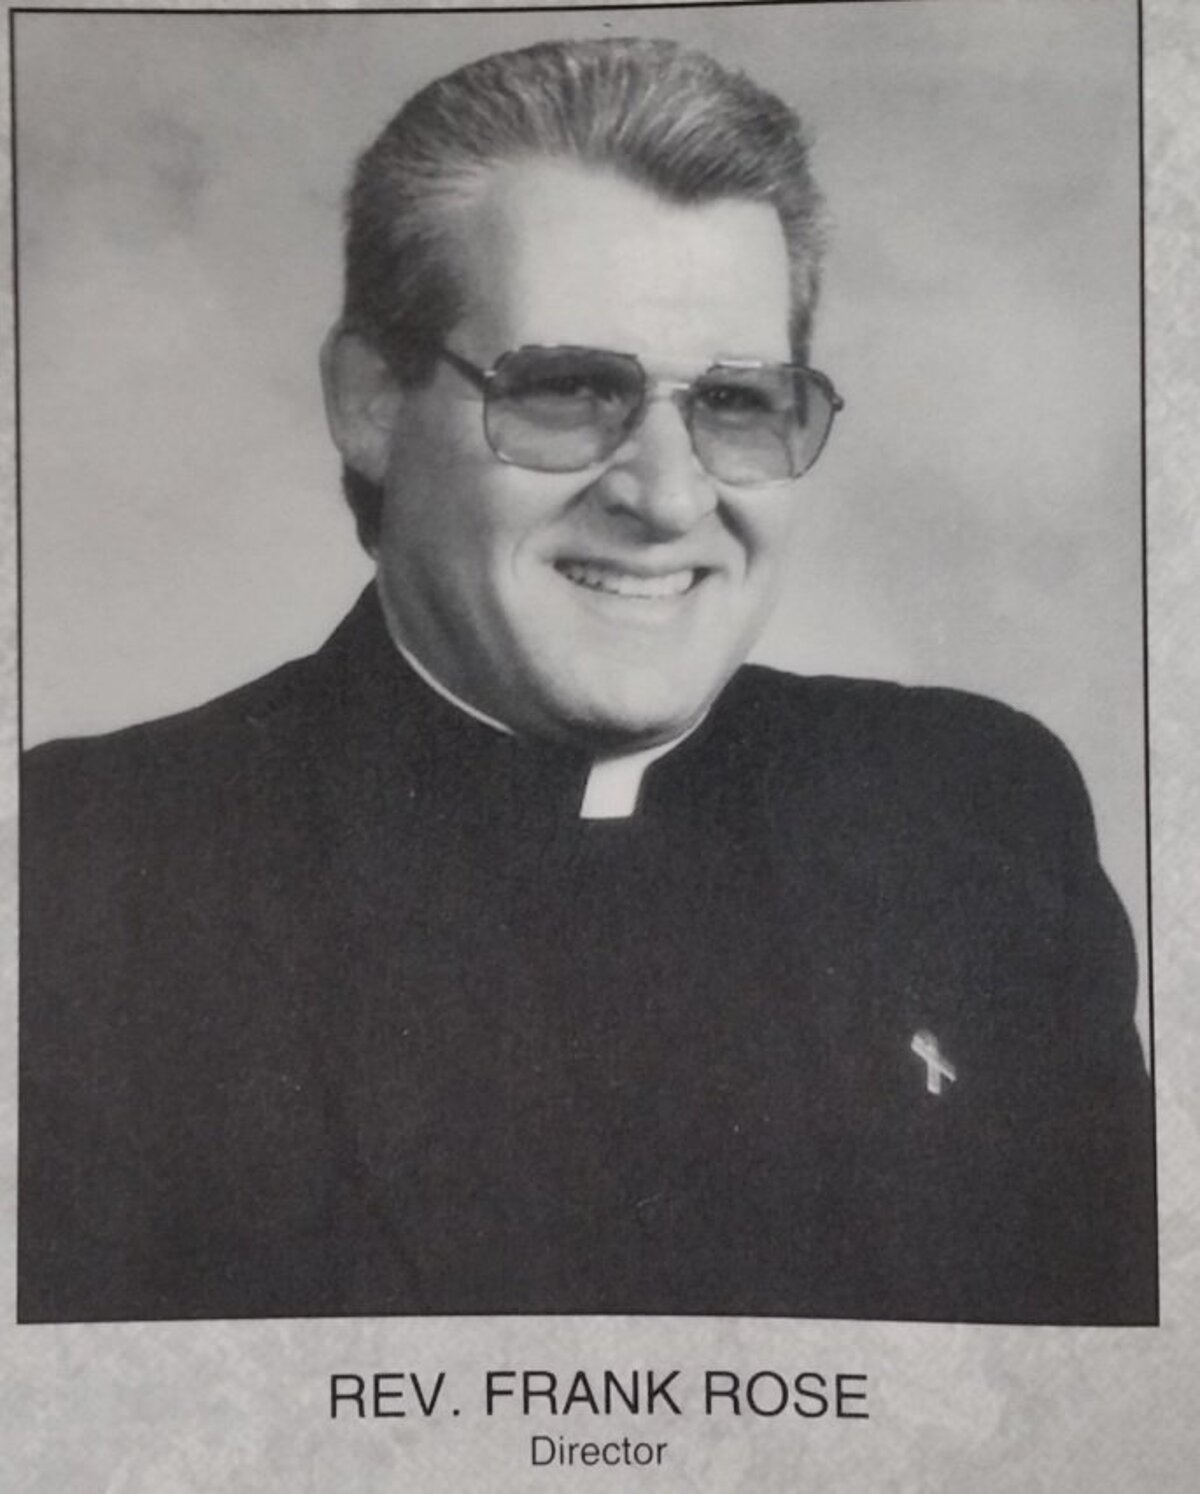 Complaint-review: Fr Frank Rose, Peter Cheplic, Archdiocese Of Newark, Saint Joseph of the Palisades, High School, St. Joes. New Jersey - Frank Rose pastor from Plainfield, NJ. Photo #1